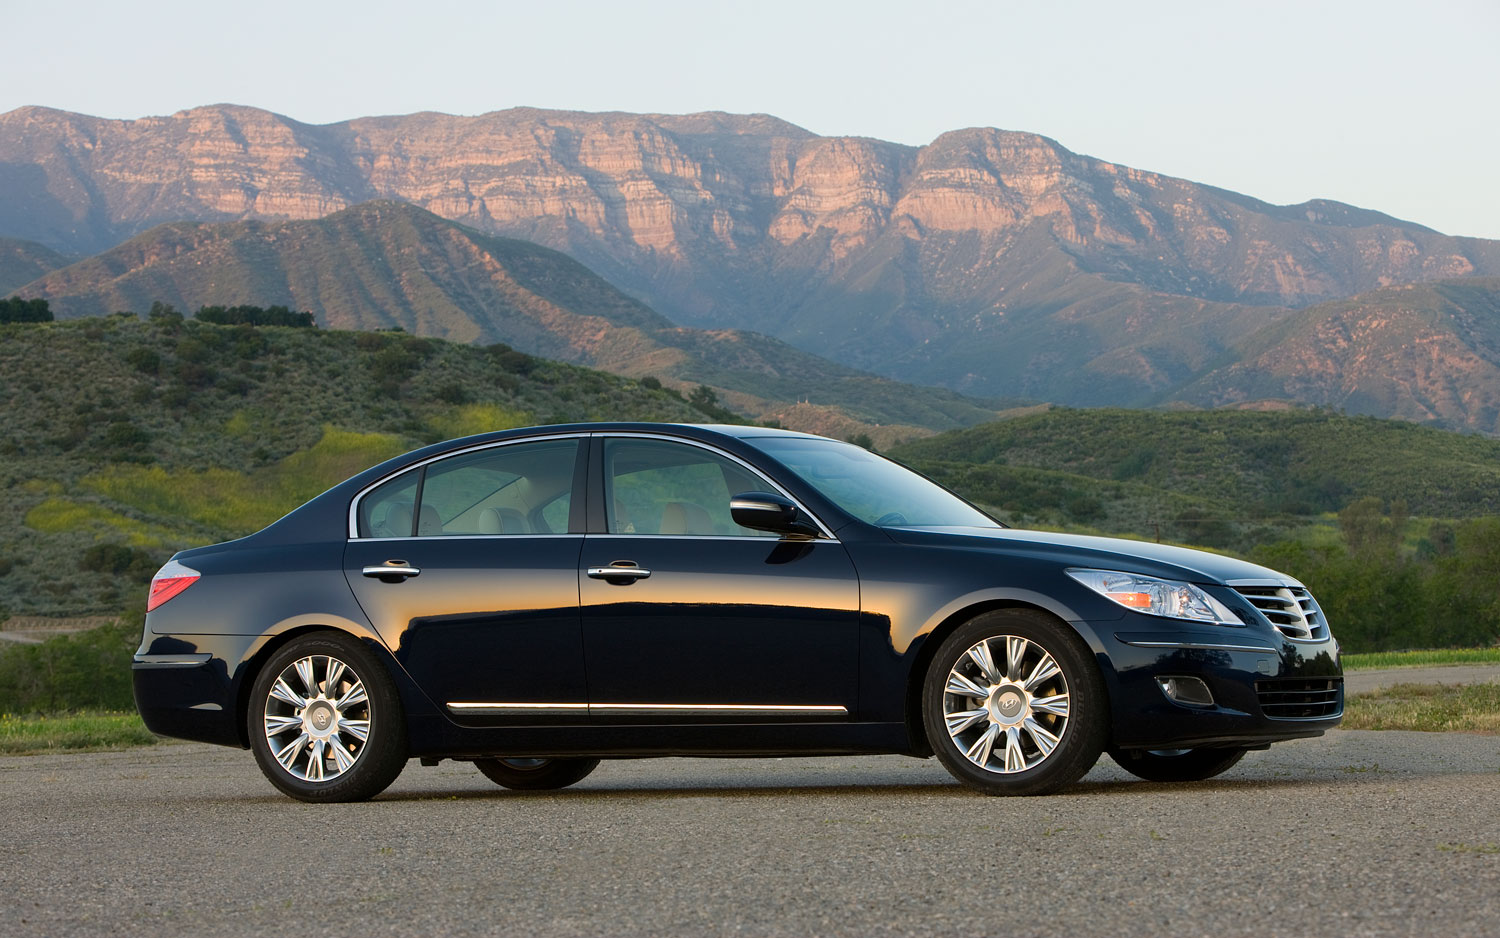 2011 Hyundai Genesis Sedan 4 6 Editors Notebook